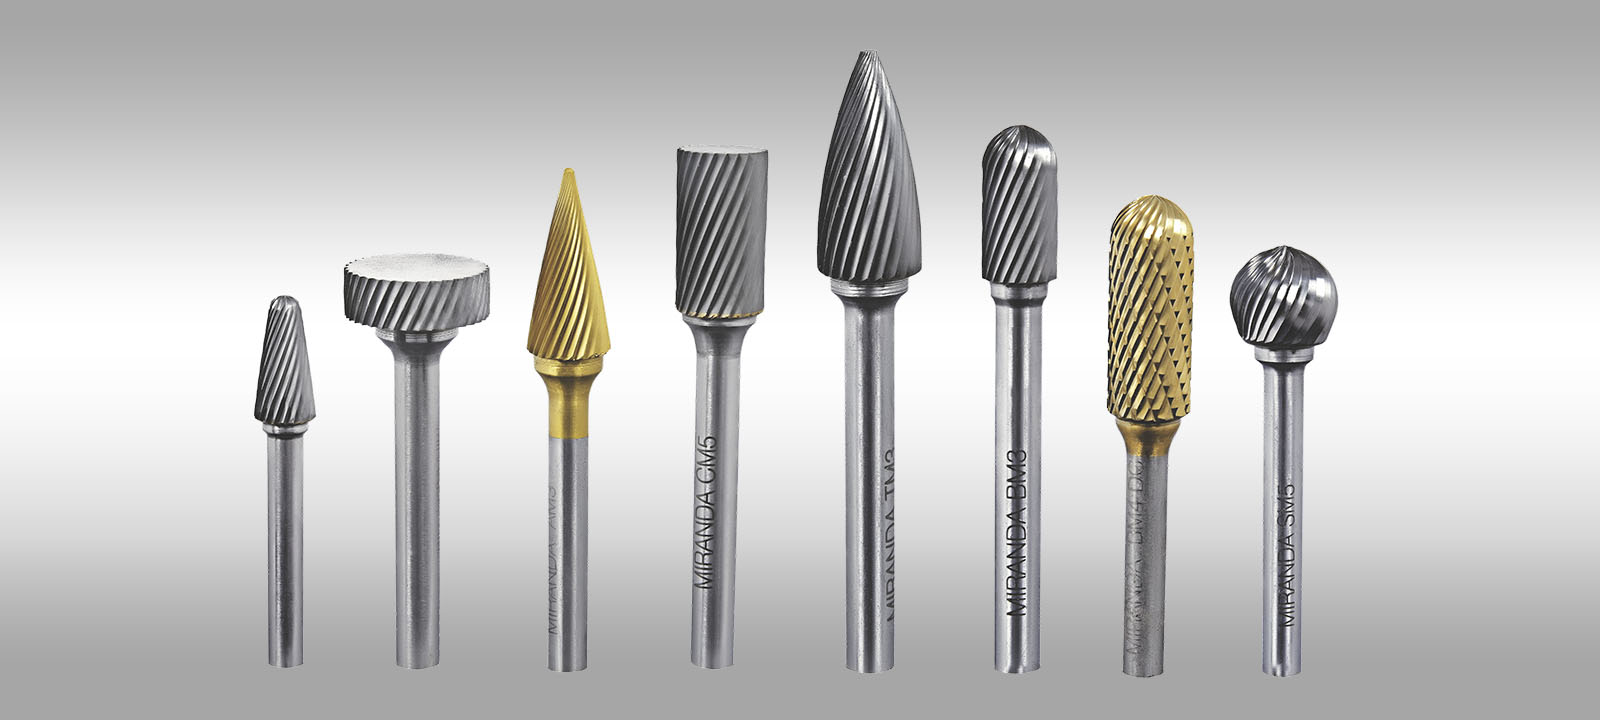 Miranda Tools | Cutting Tool Manufacturers and Suppliers